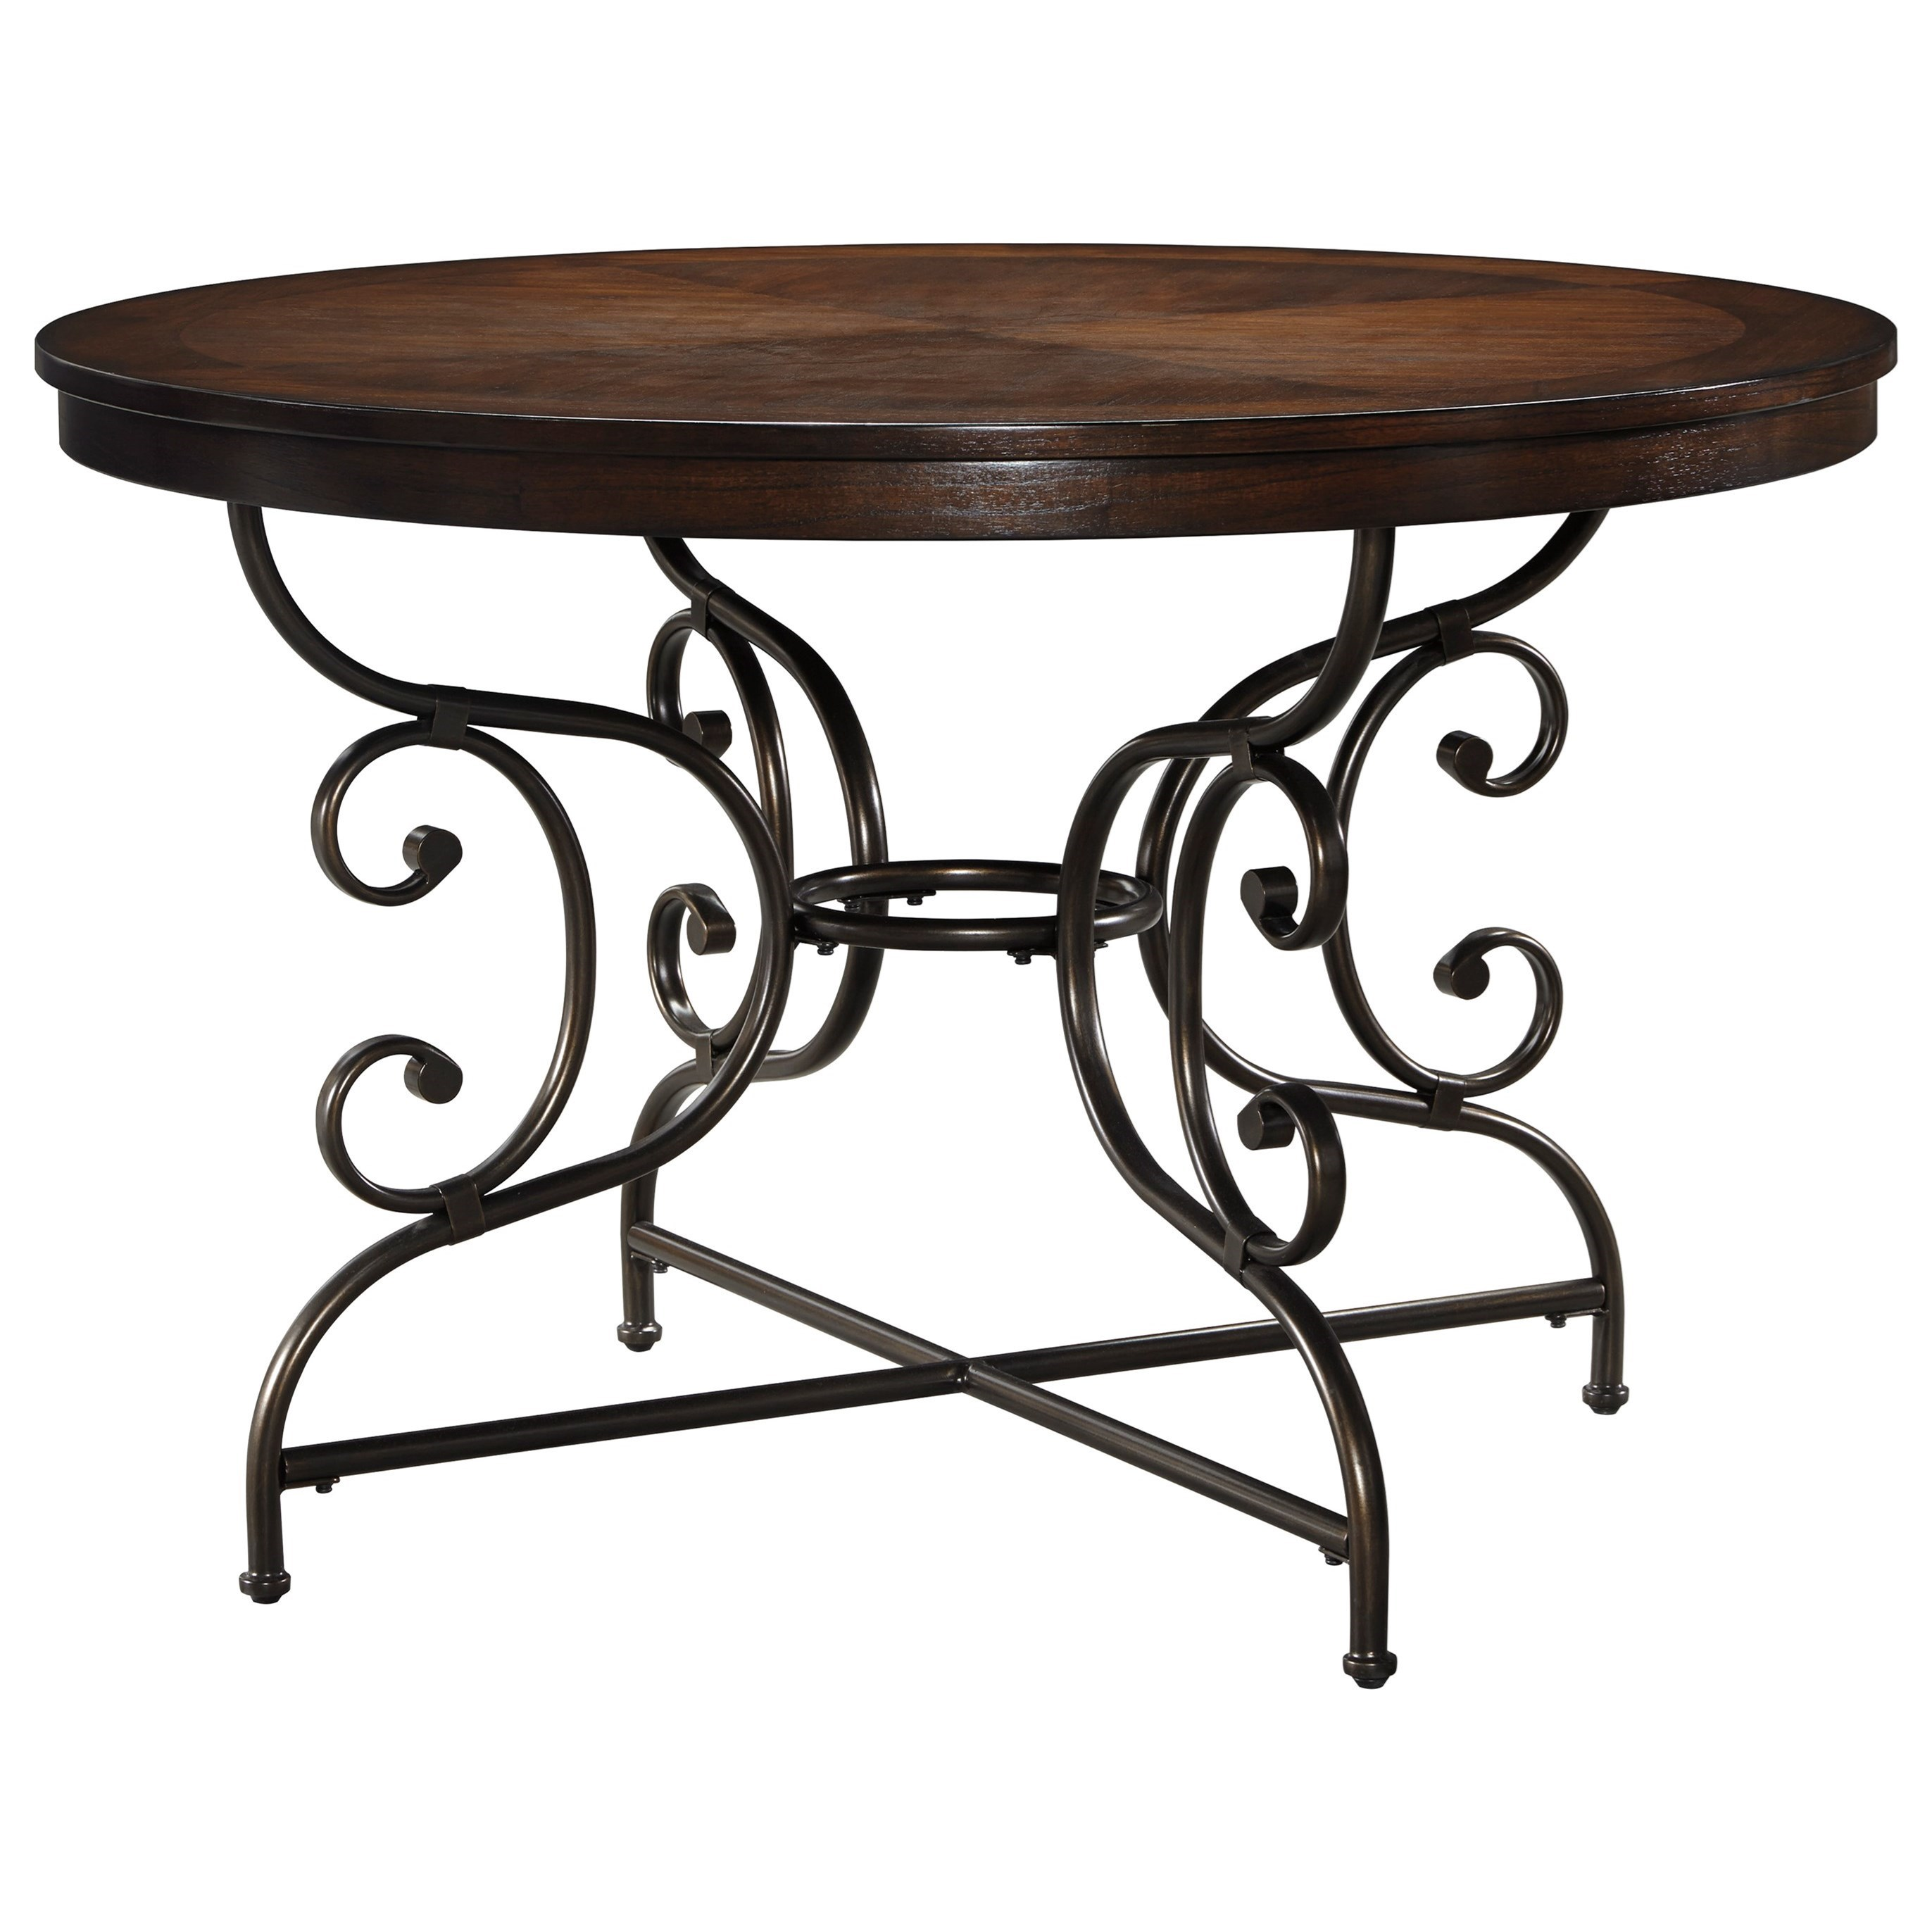 Signature Design by Ashley Brulind Round Dining Room Table - Item Number: D584-15